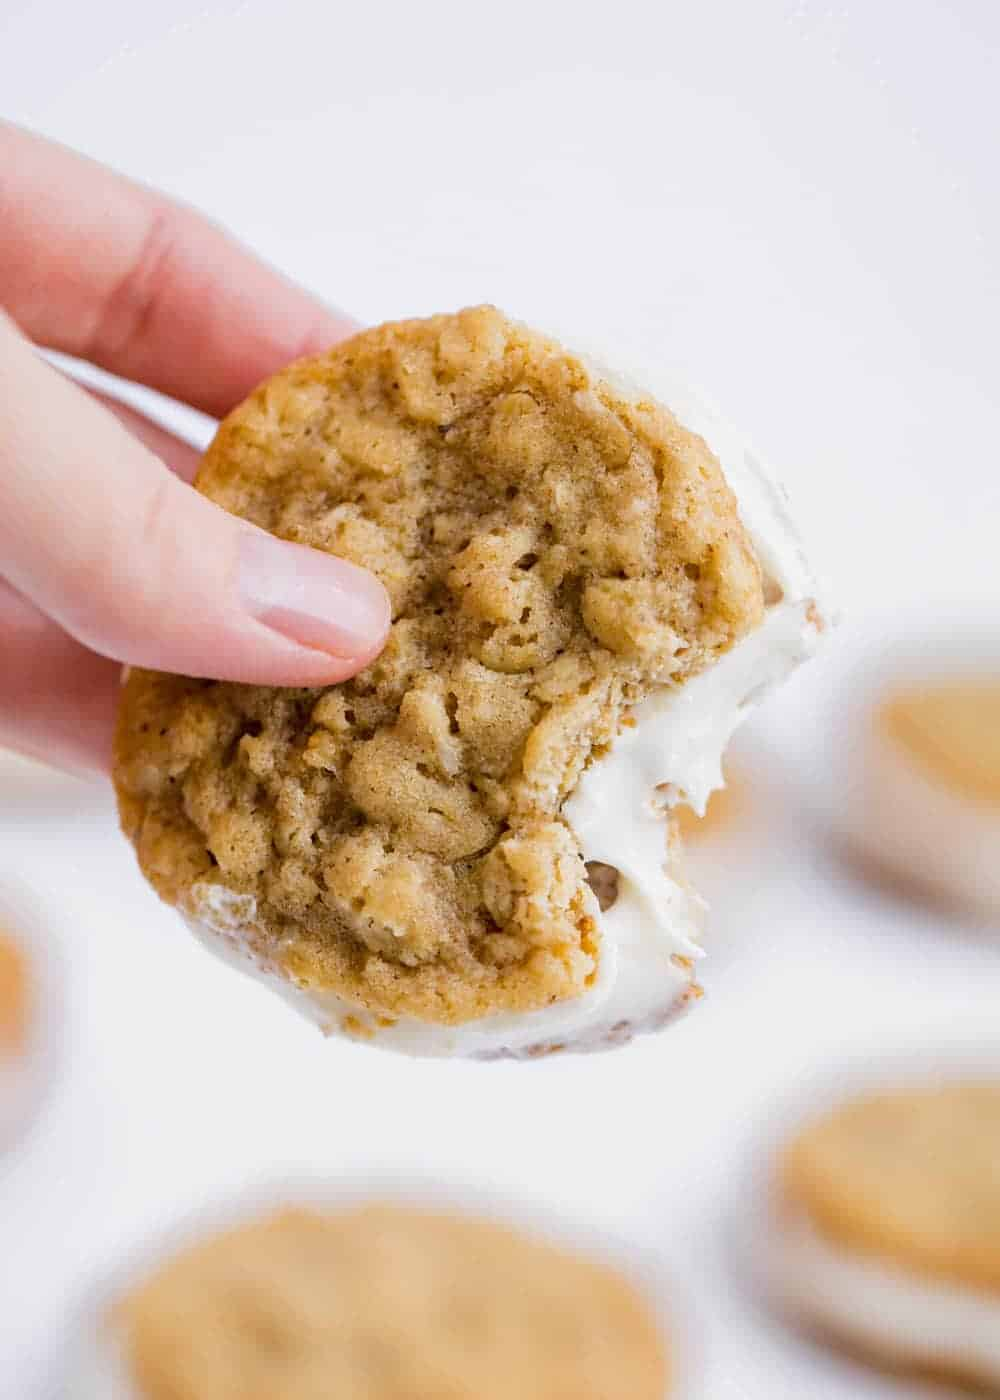 homemade oatmeal cream pie with a bite taken out